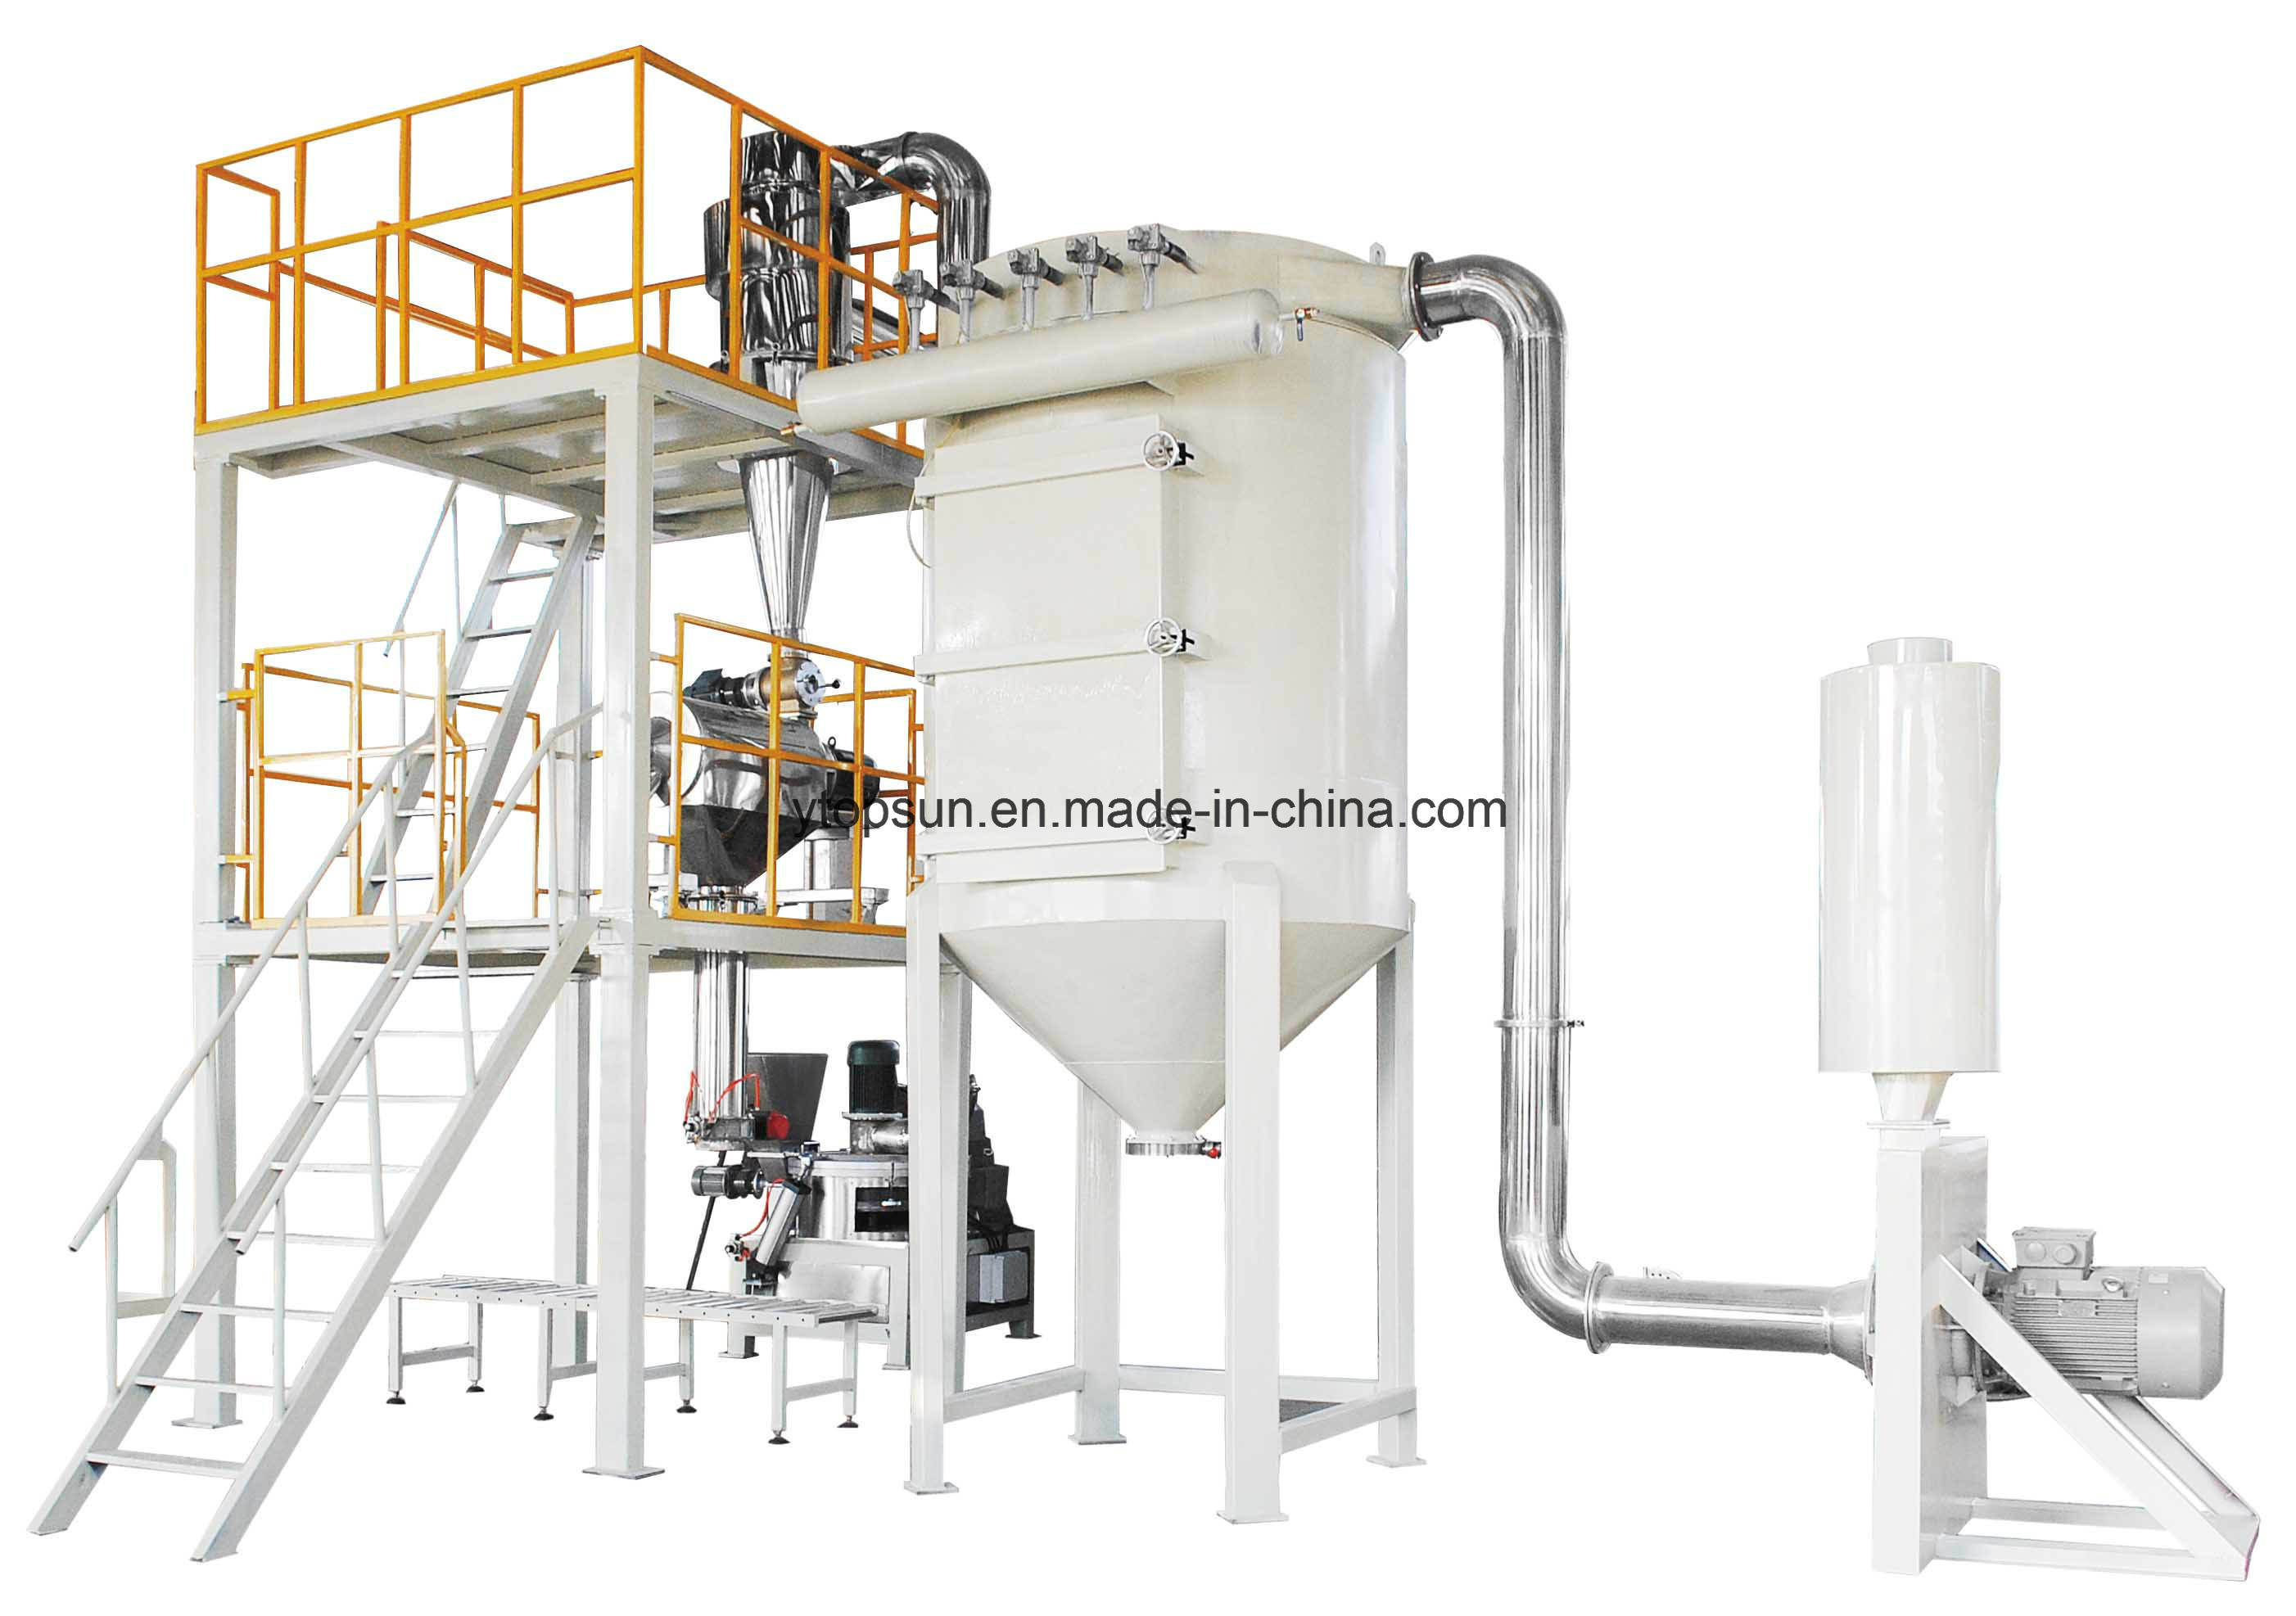 Powder Coating/Paint Producing/Manufacturing/Production/Making Air Classifier/Classifying Grinding Mill